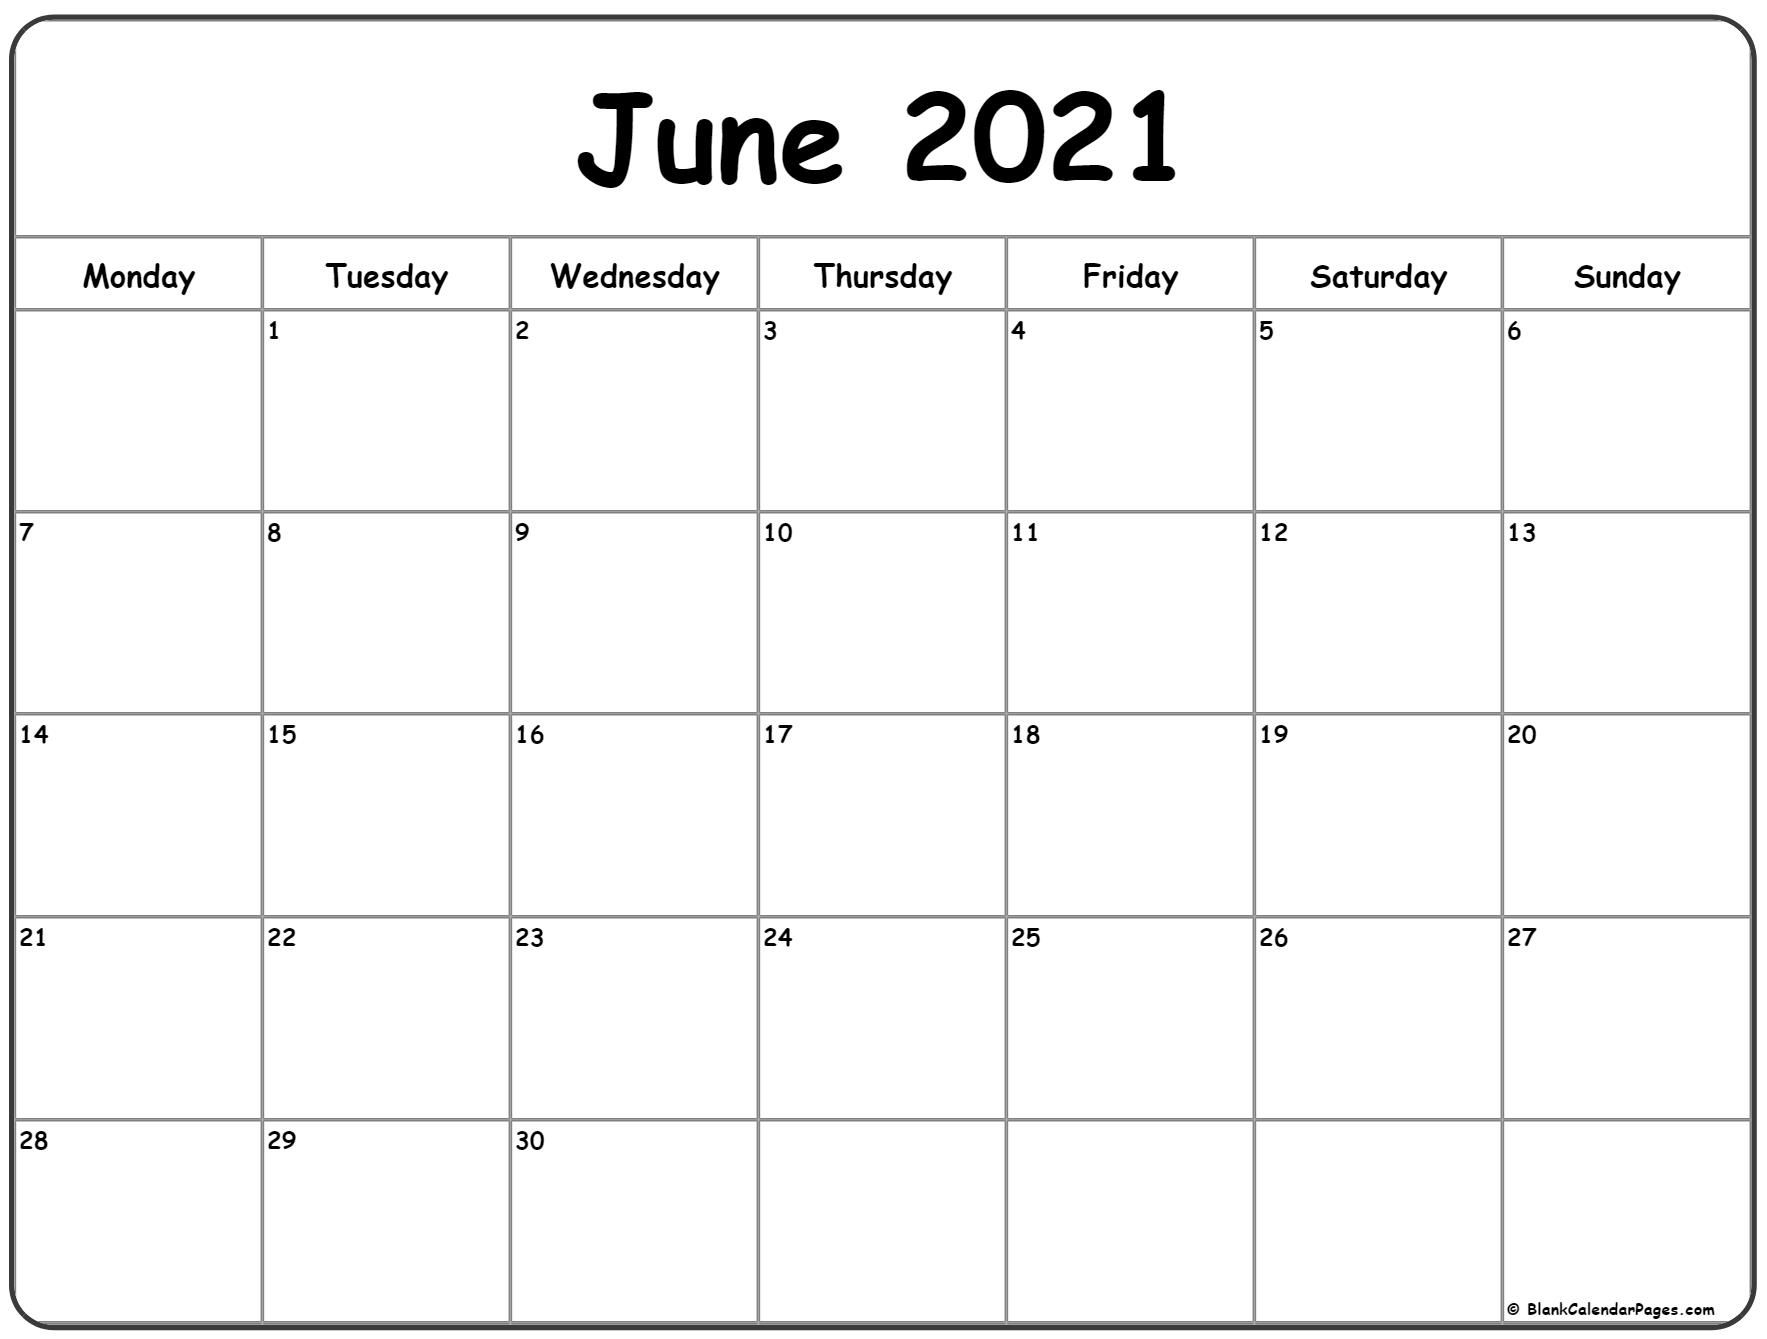 june 2021 monday calendar | monday to sunday